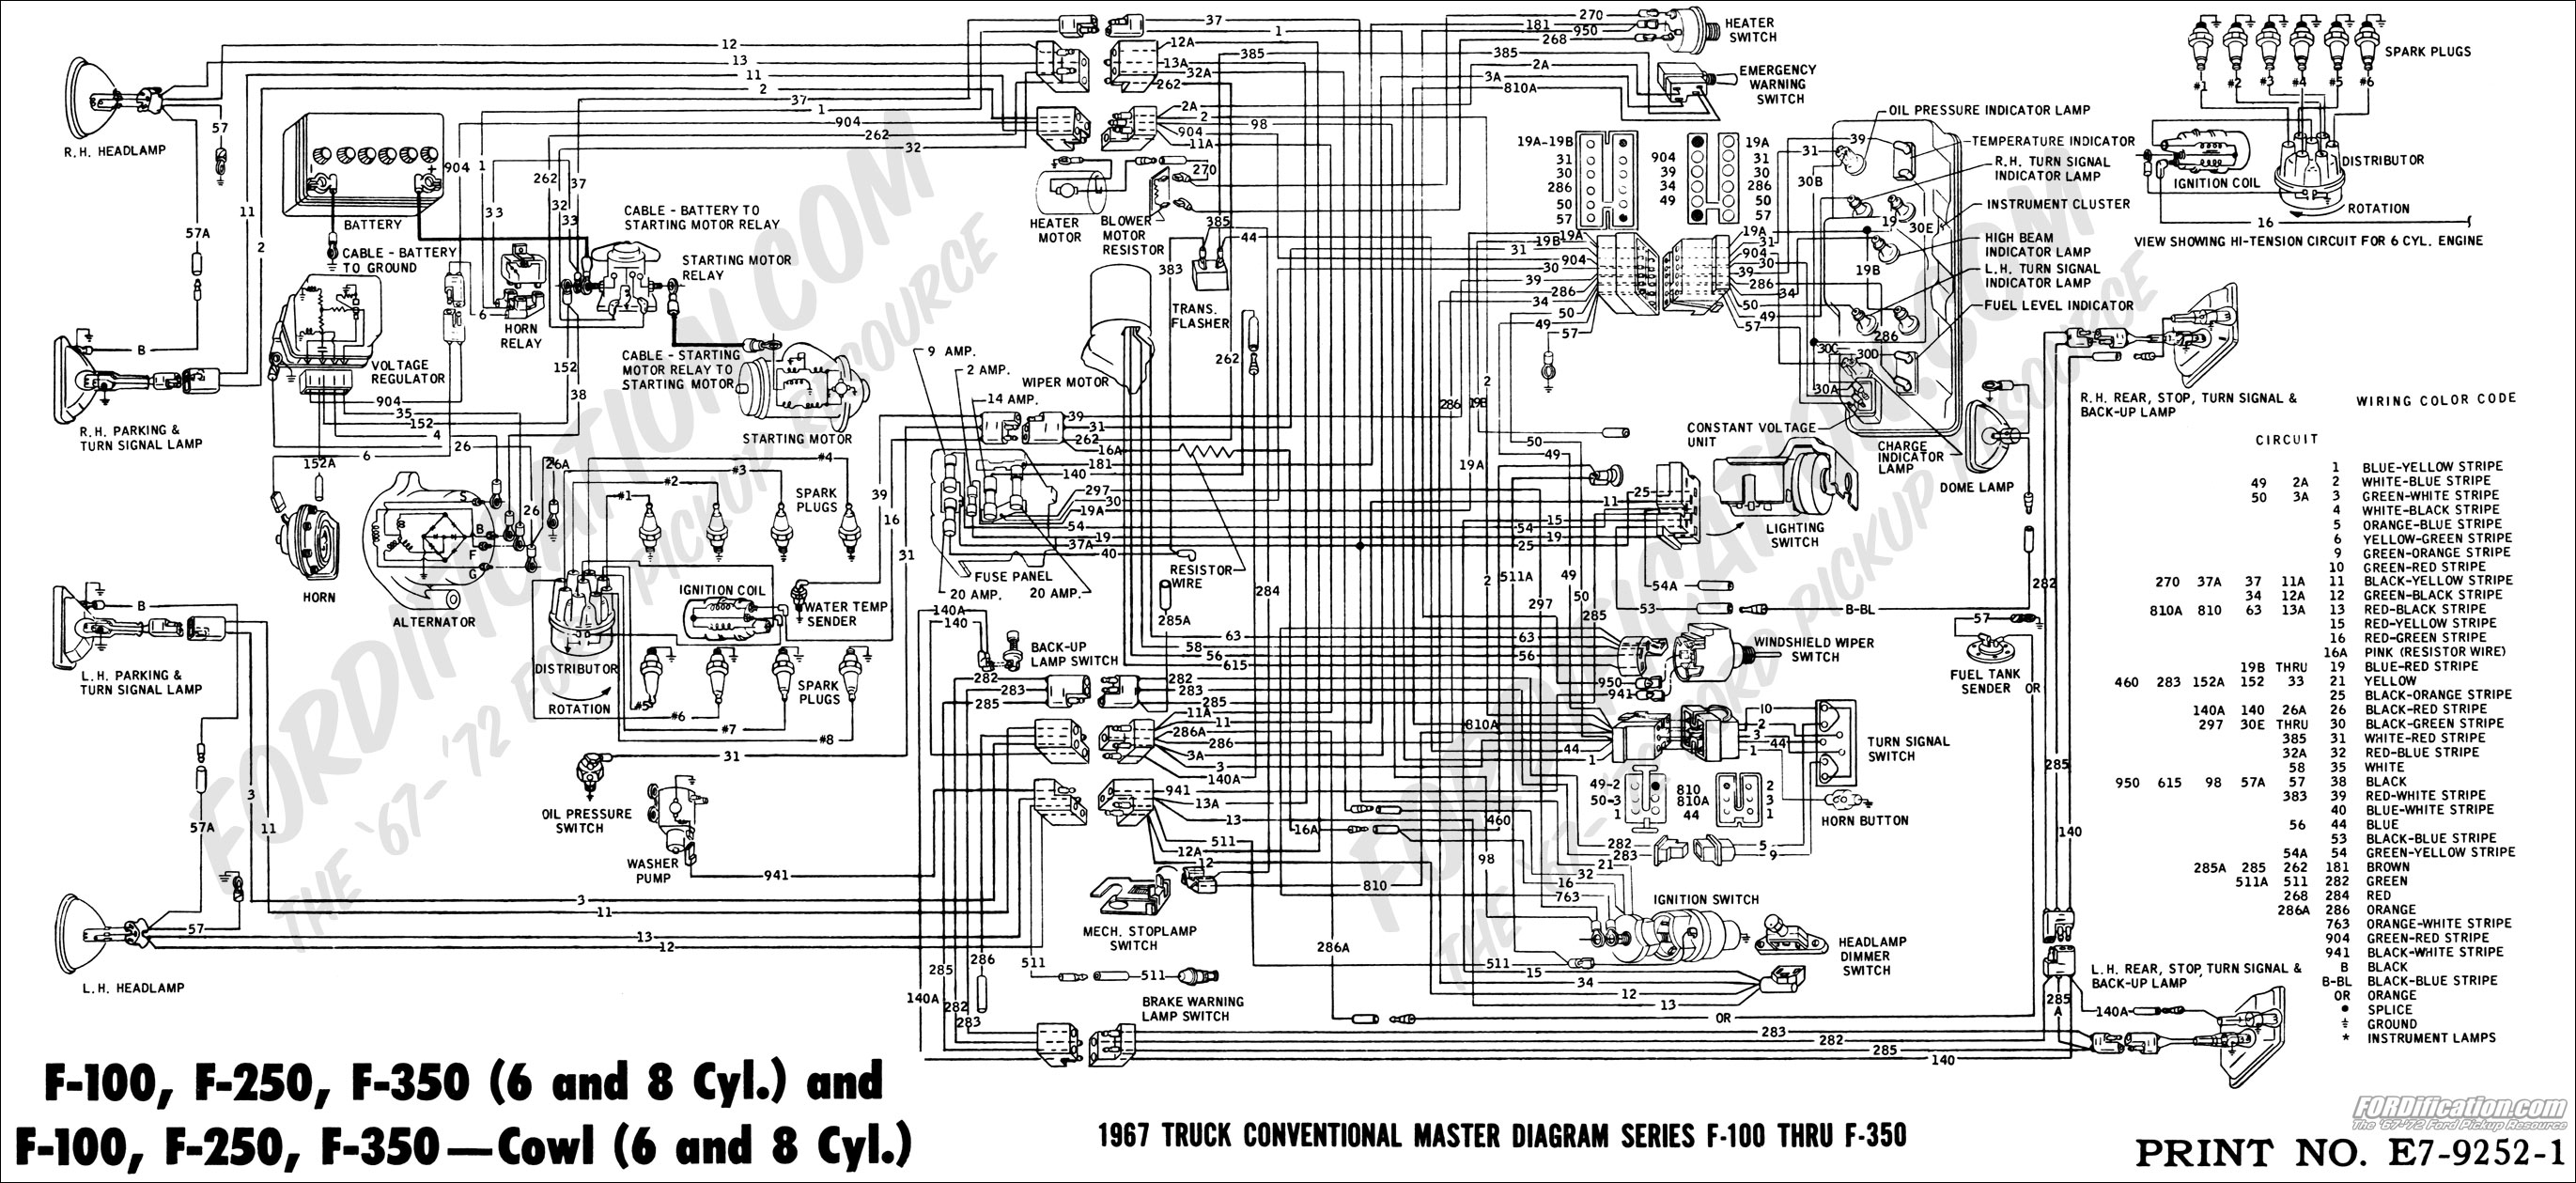 67masterdiagram ford truck technical drawings and schematics section h wiring Ford F-250 Wiring Diagram at alyssarenee.co